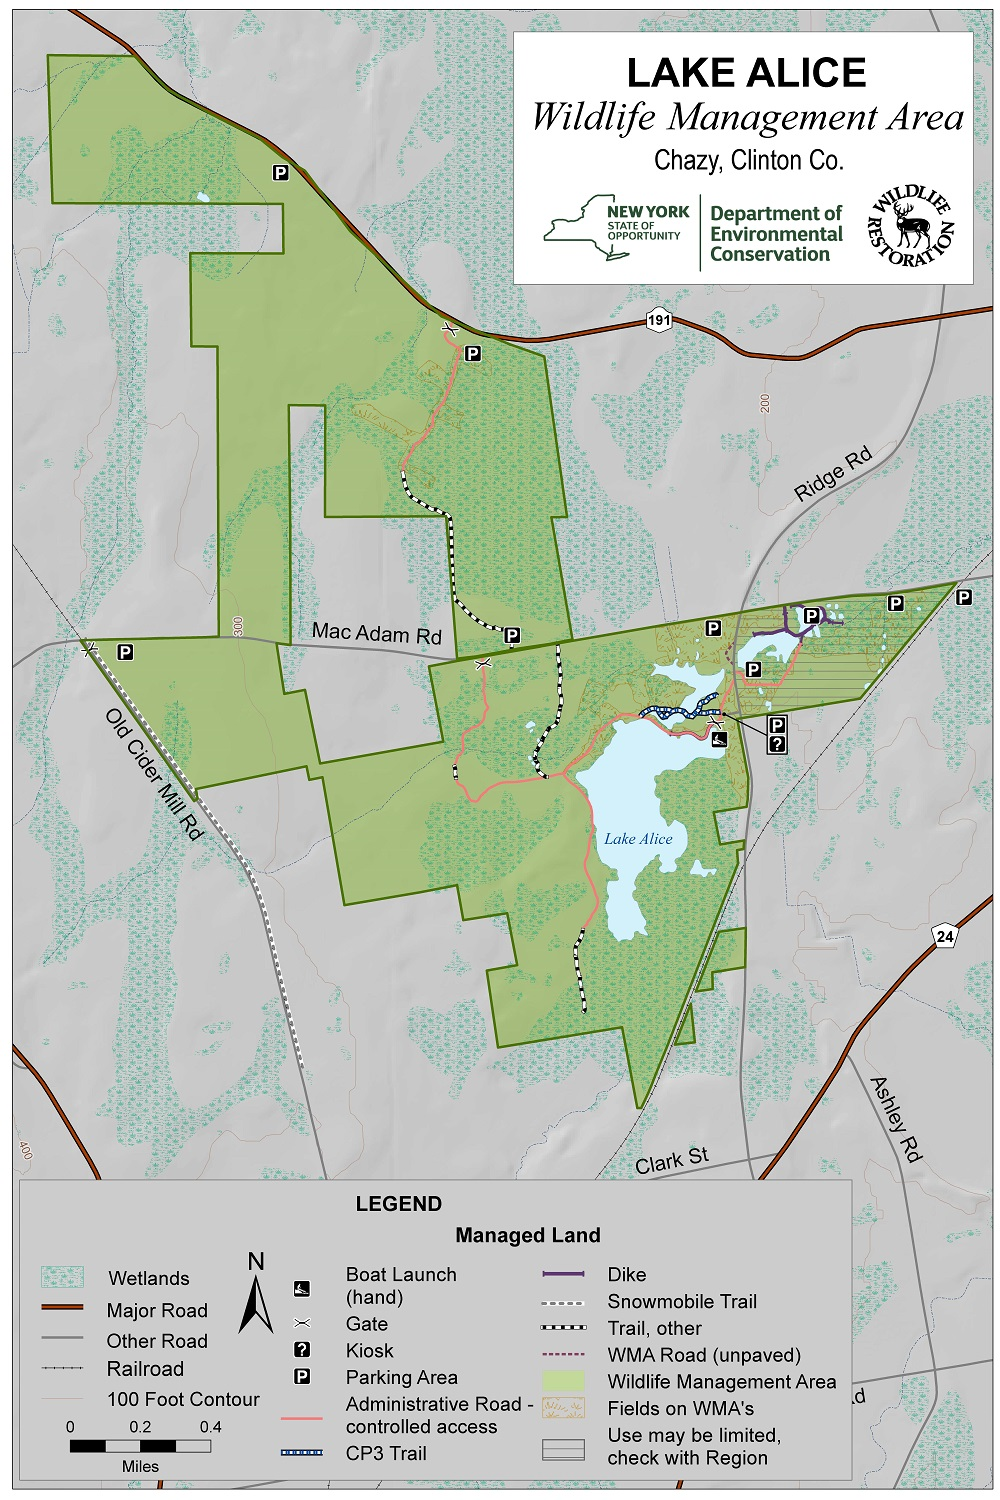 Lake Alice Wildlife Management Area Map